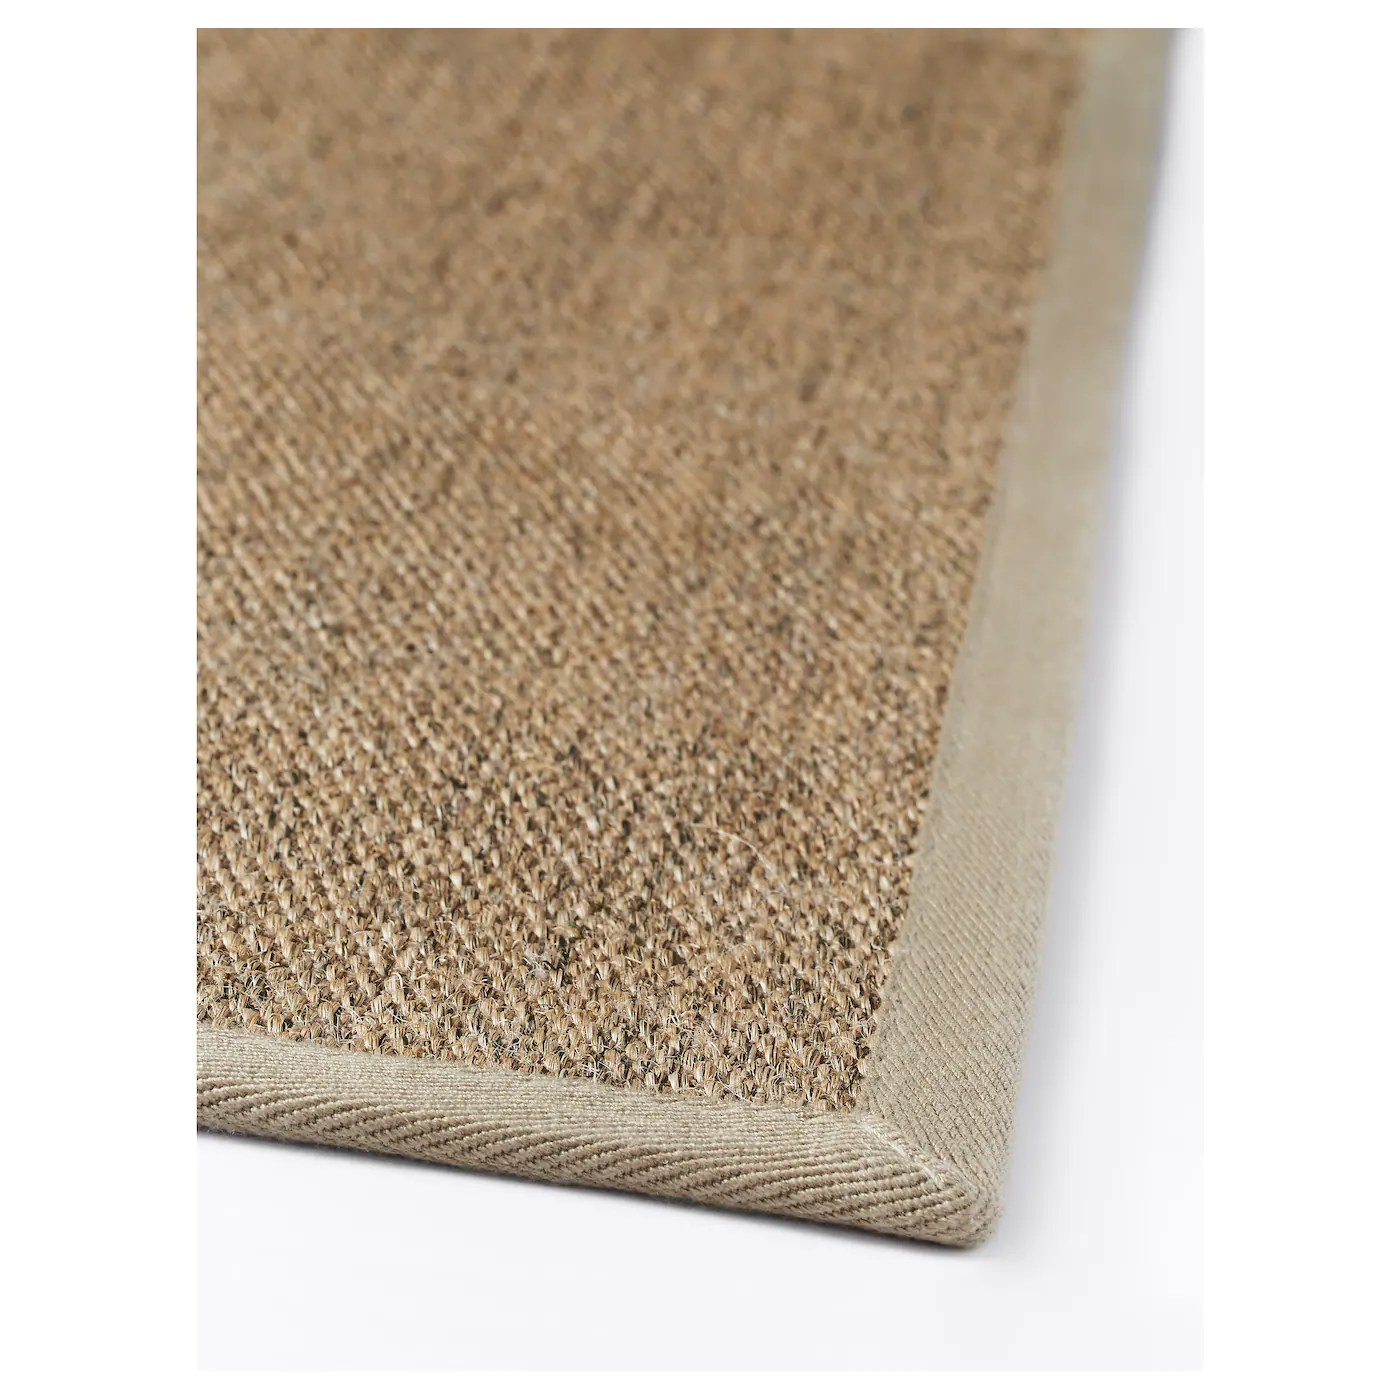 Tappeto Ikea Sisal Osted Rug Flatwoven Natural 80x140 Cm Ikea